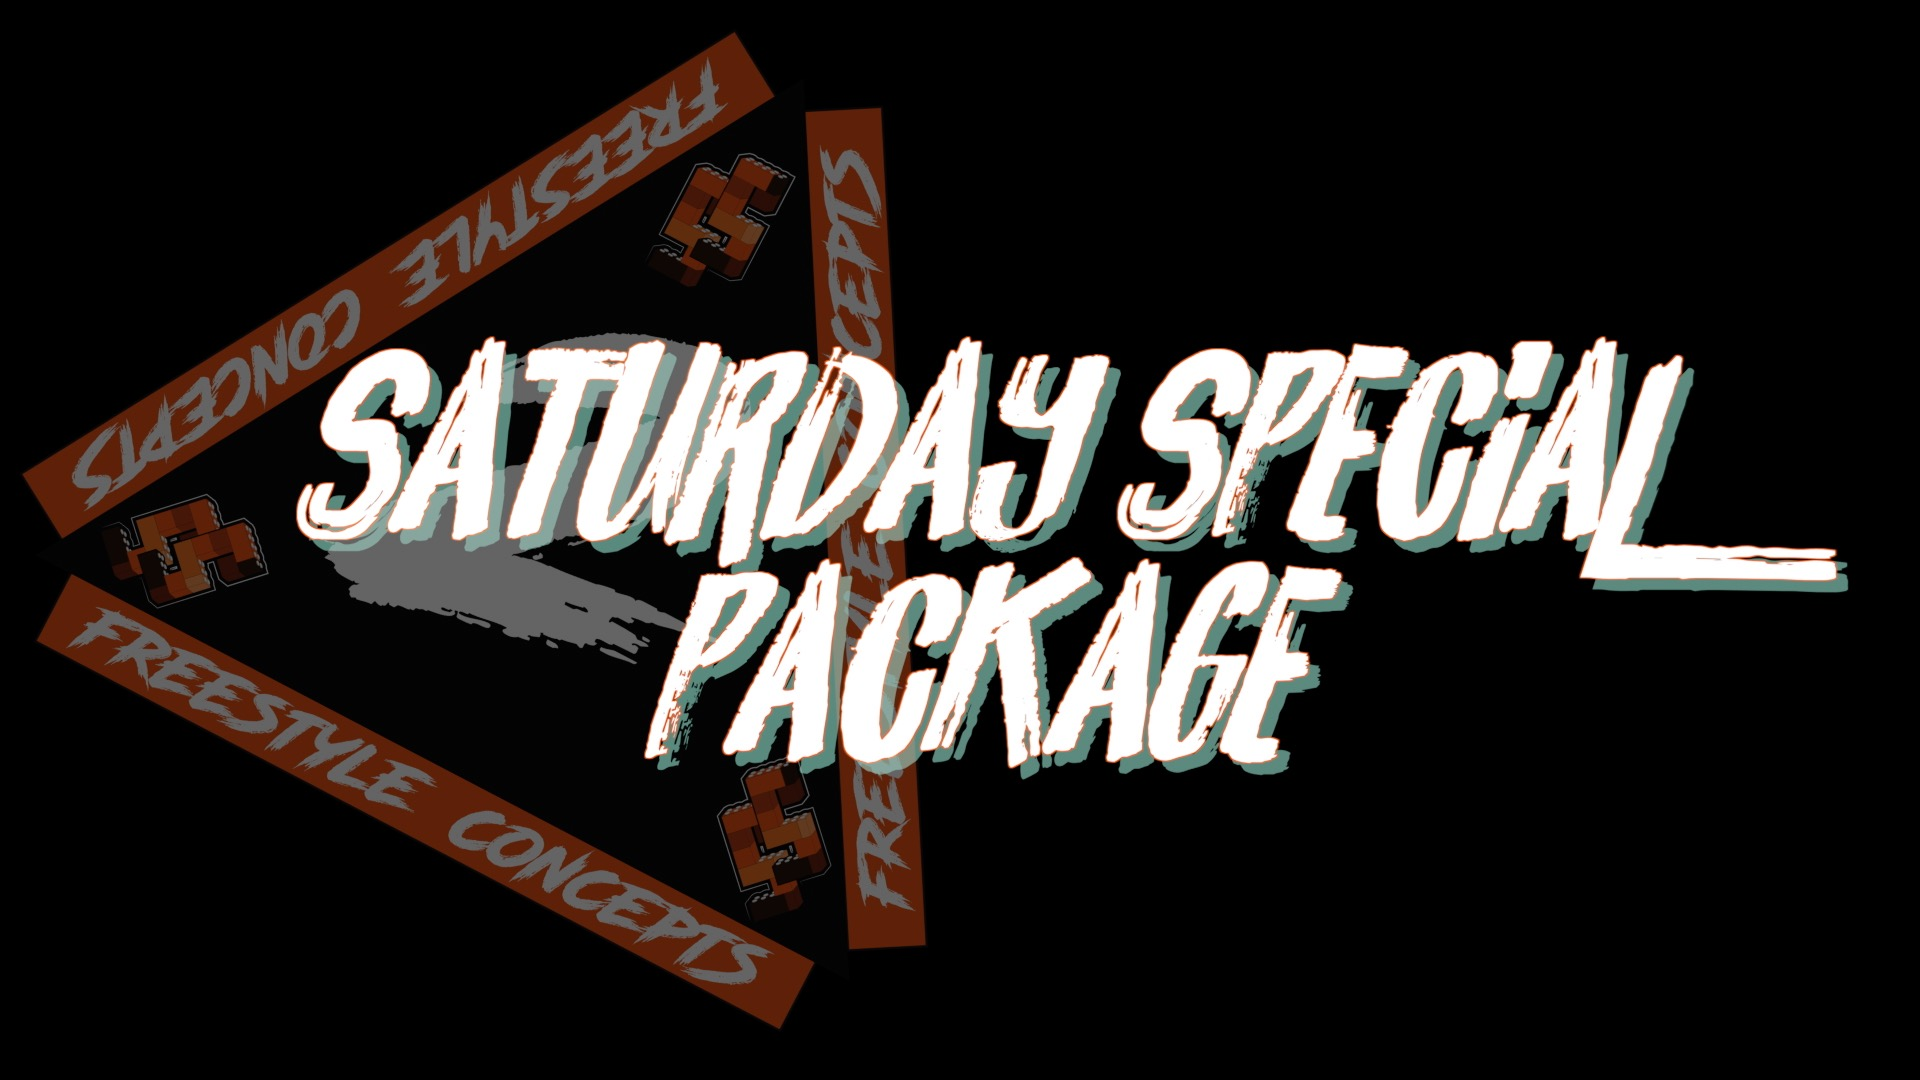 SaturdaySpecialPackage.jpg